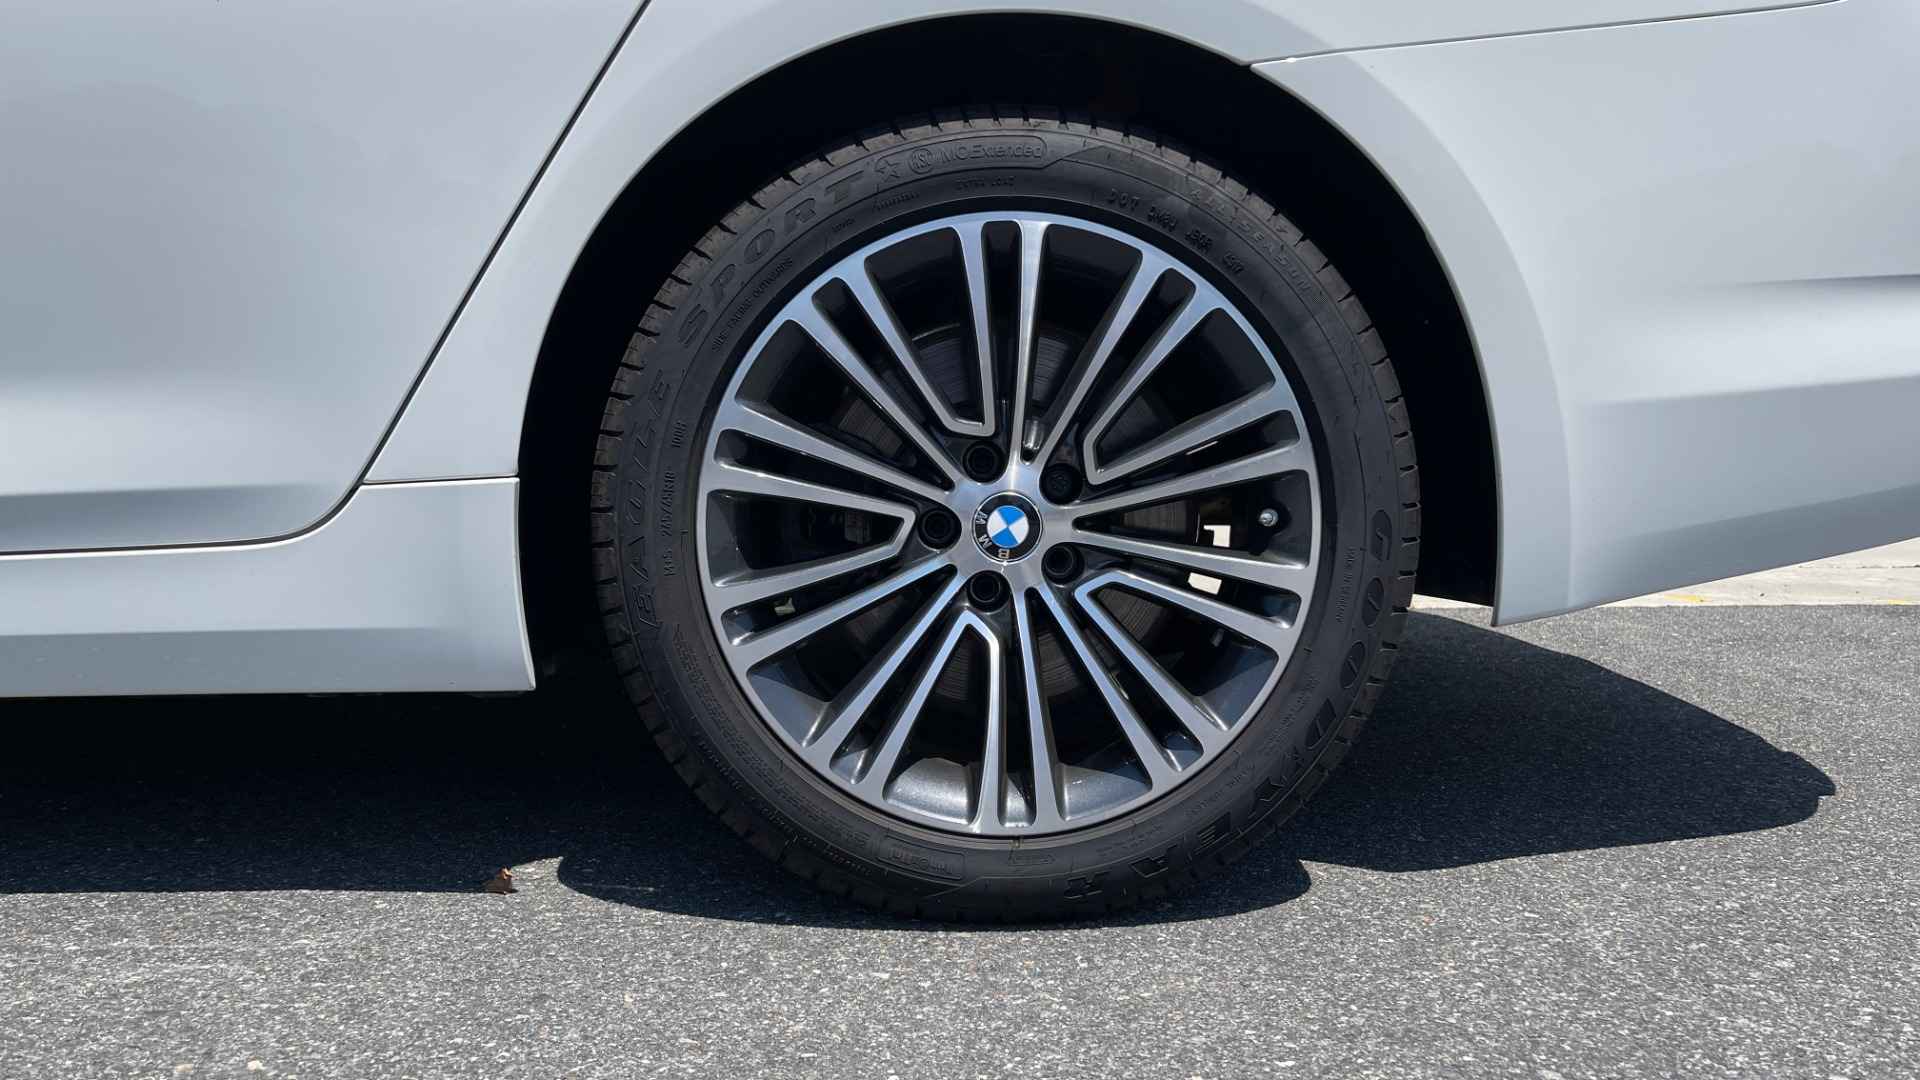 Used 2018 BMW 5 SERIES 540IXDRIVE PREMIUM / PARK ASSIST / KEYLESS ENTRY / SUNROOF / REARVIEW for sale $42,995 at Formula Imports in Charlotte NC 28227 73